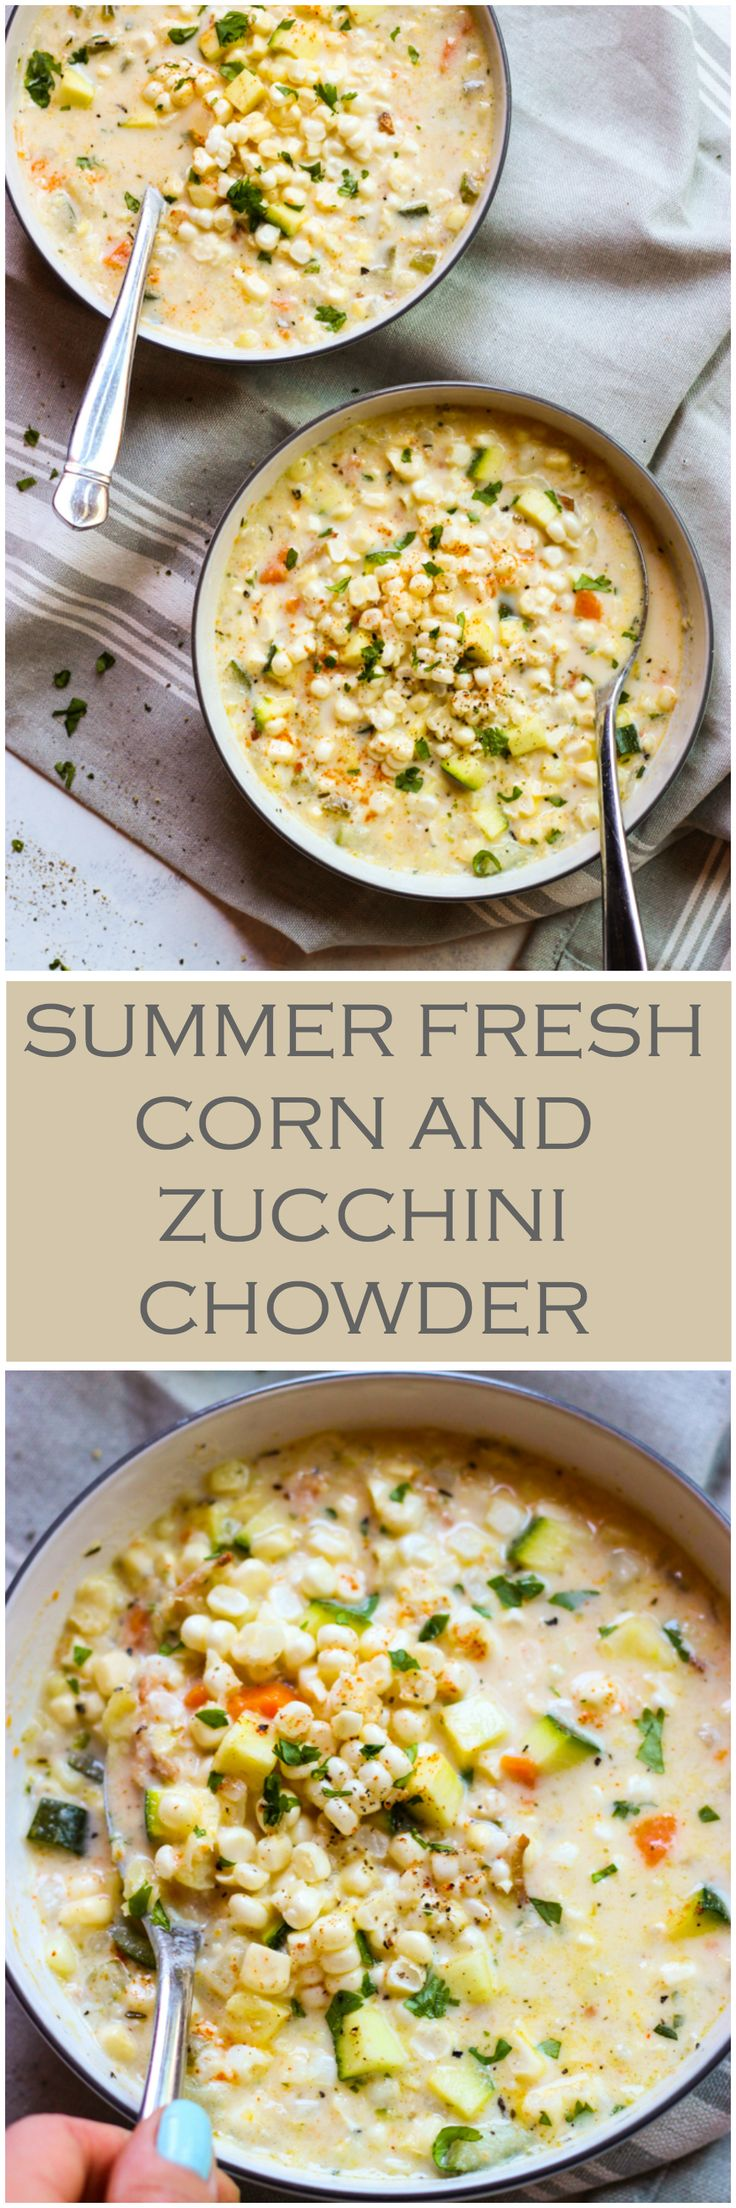 Summer Fresh Corn and Zucchini Chowder - the BEST healthy chowder! At only 173…